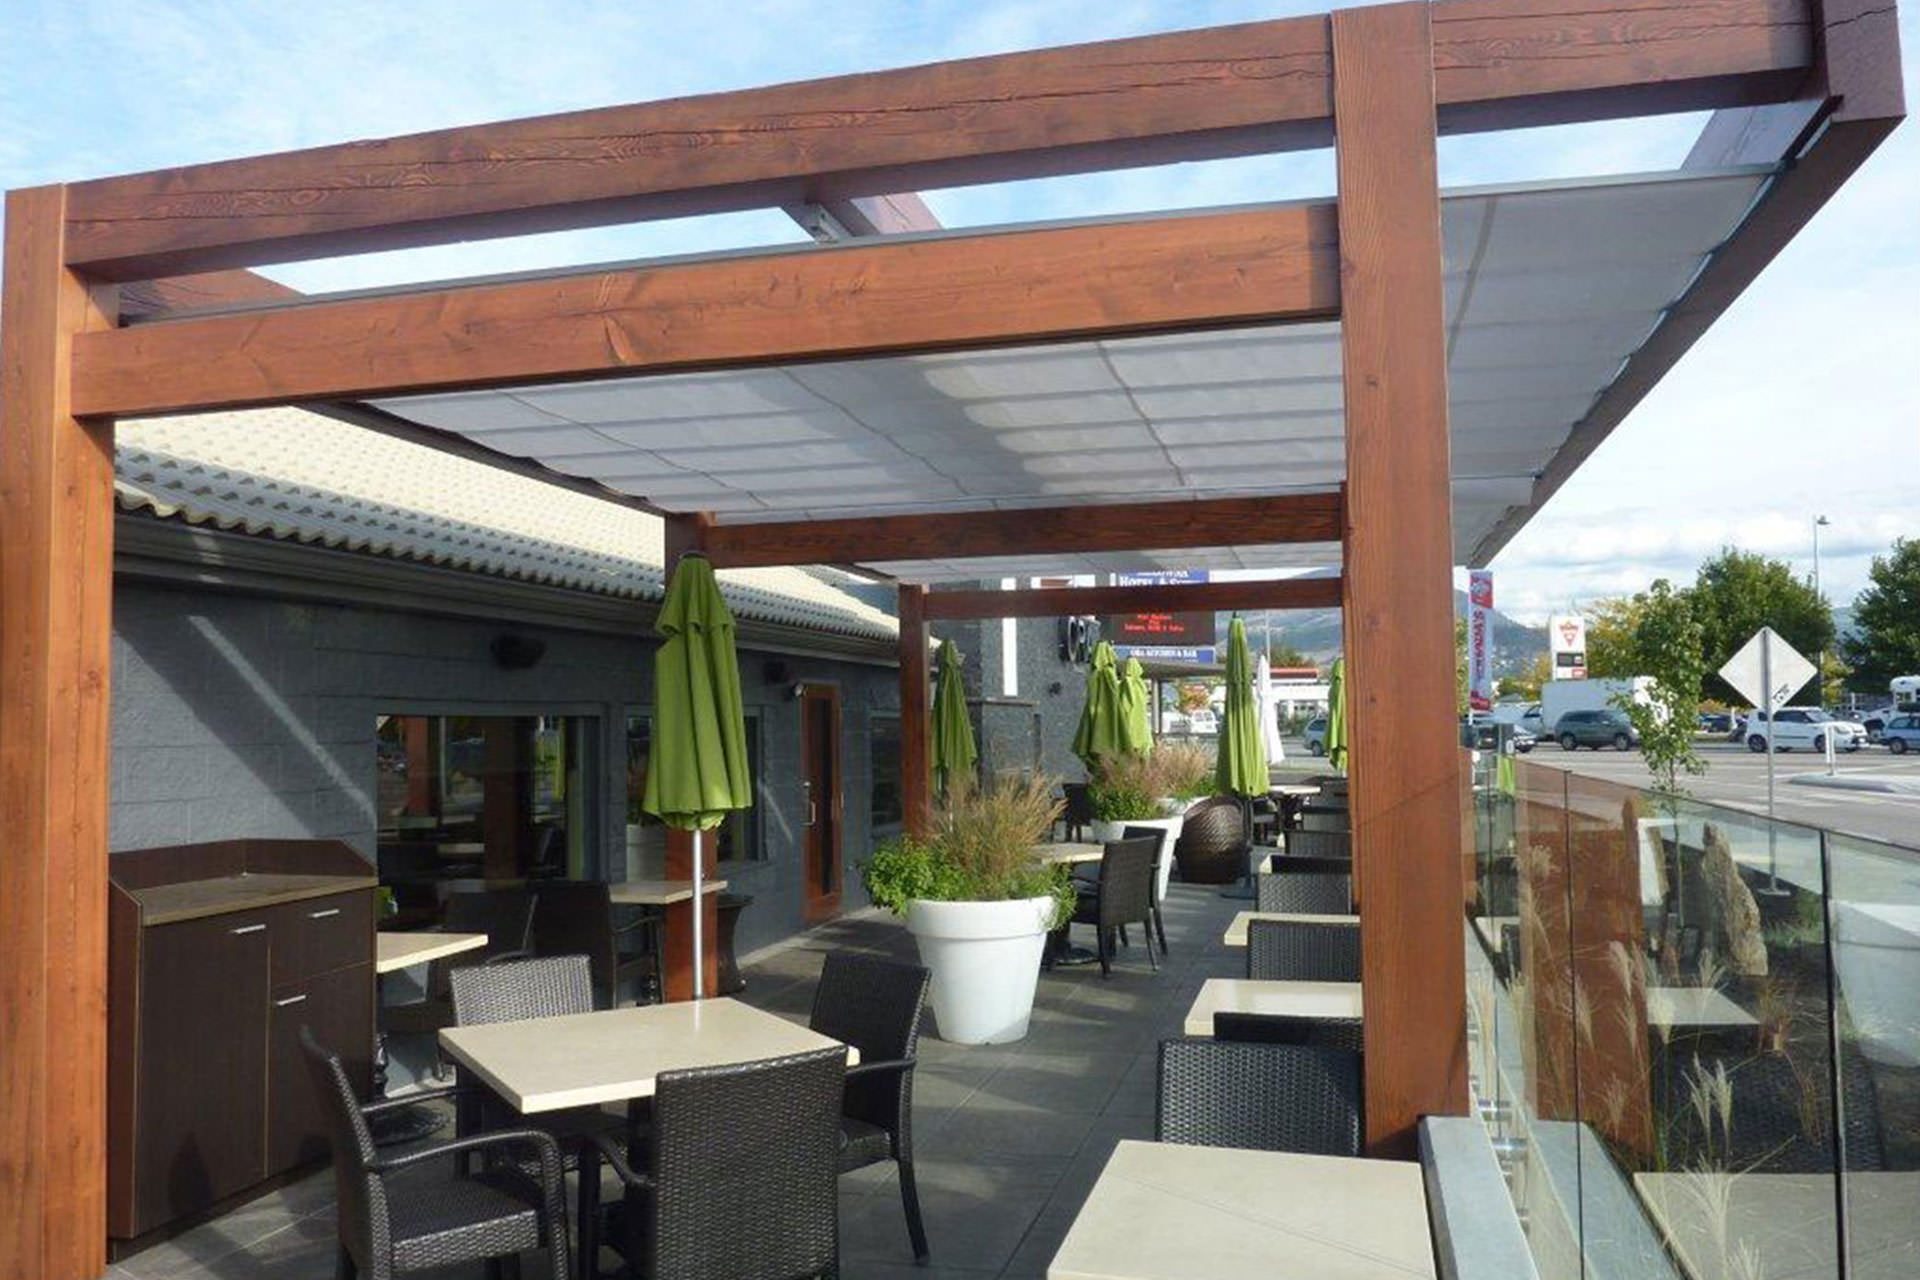 Retractable Awning Retractable Canopy Awnings